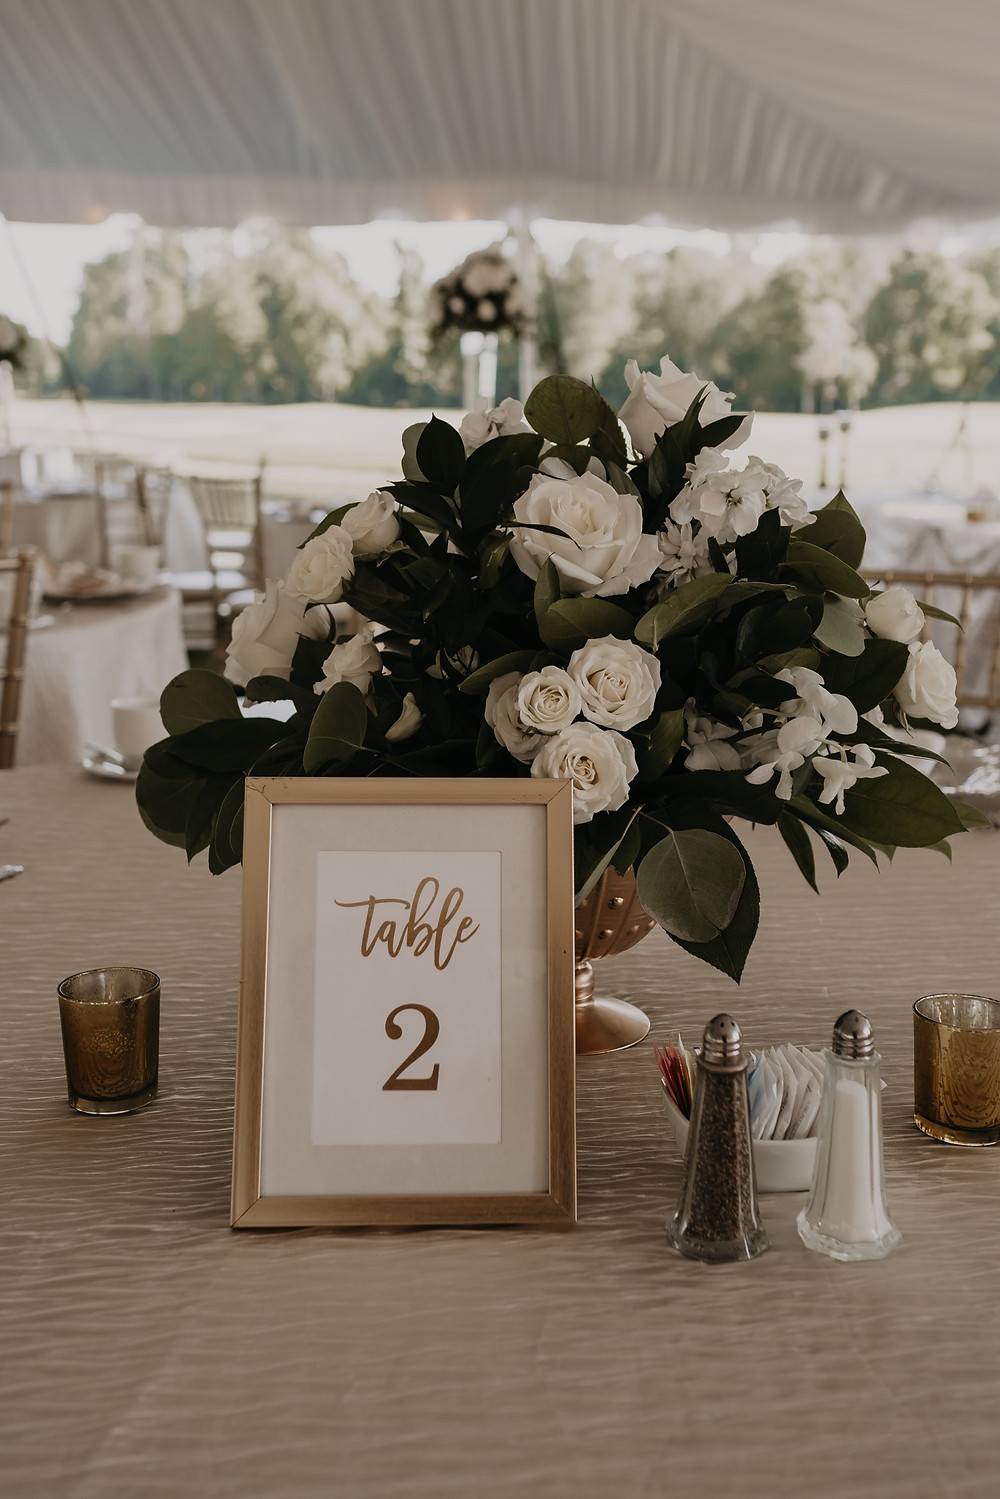 Wedding table decor and florals in Metro Detroit. Photographed by Nicole Leanne Photography.